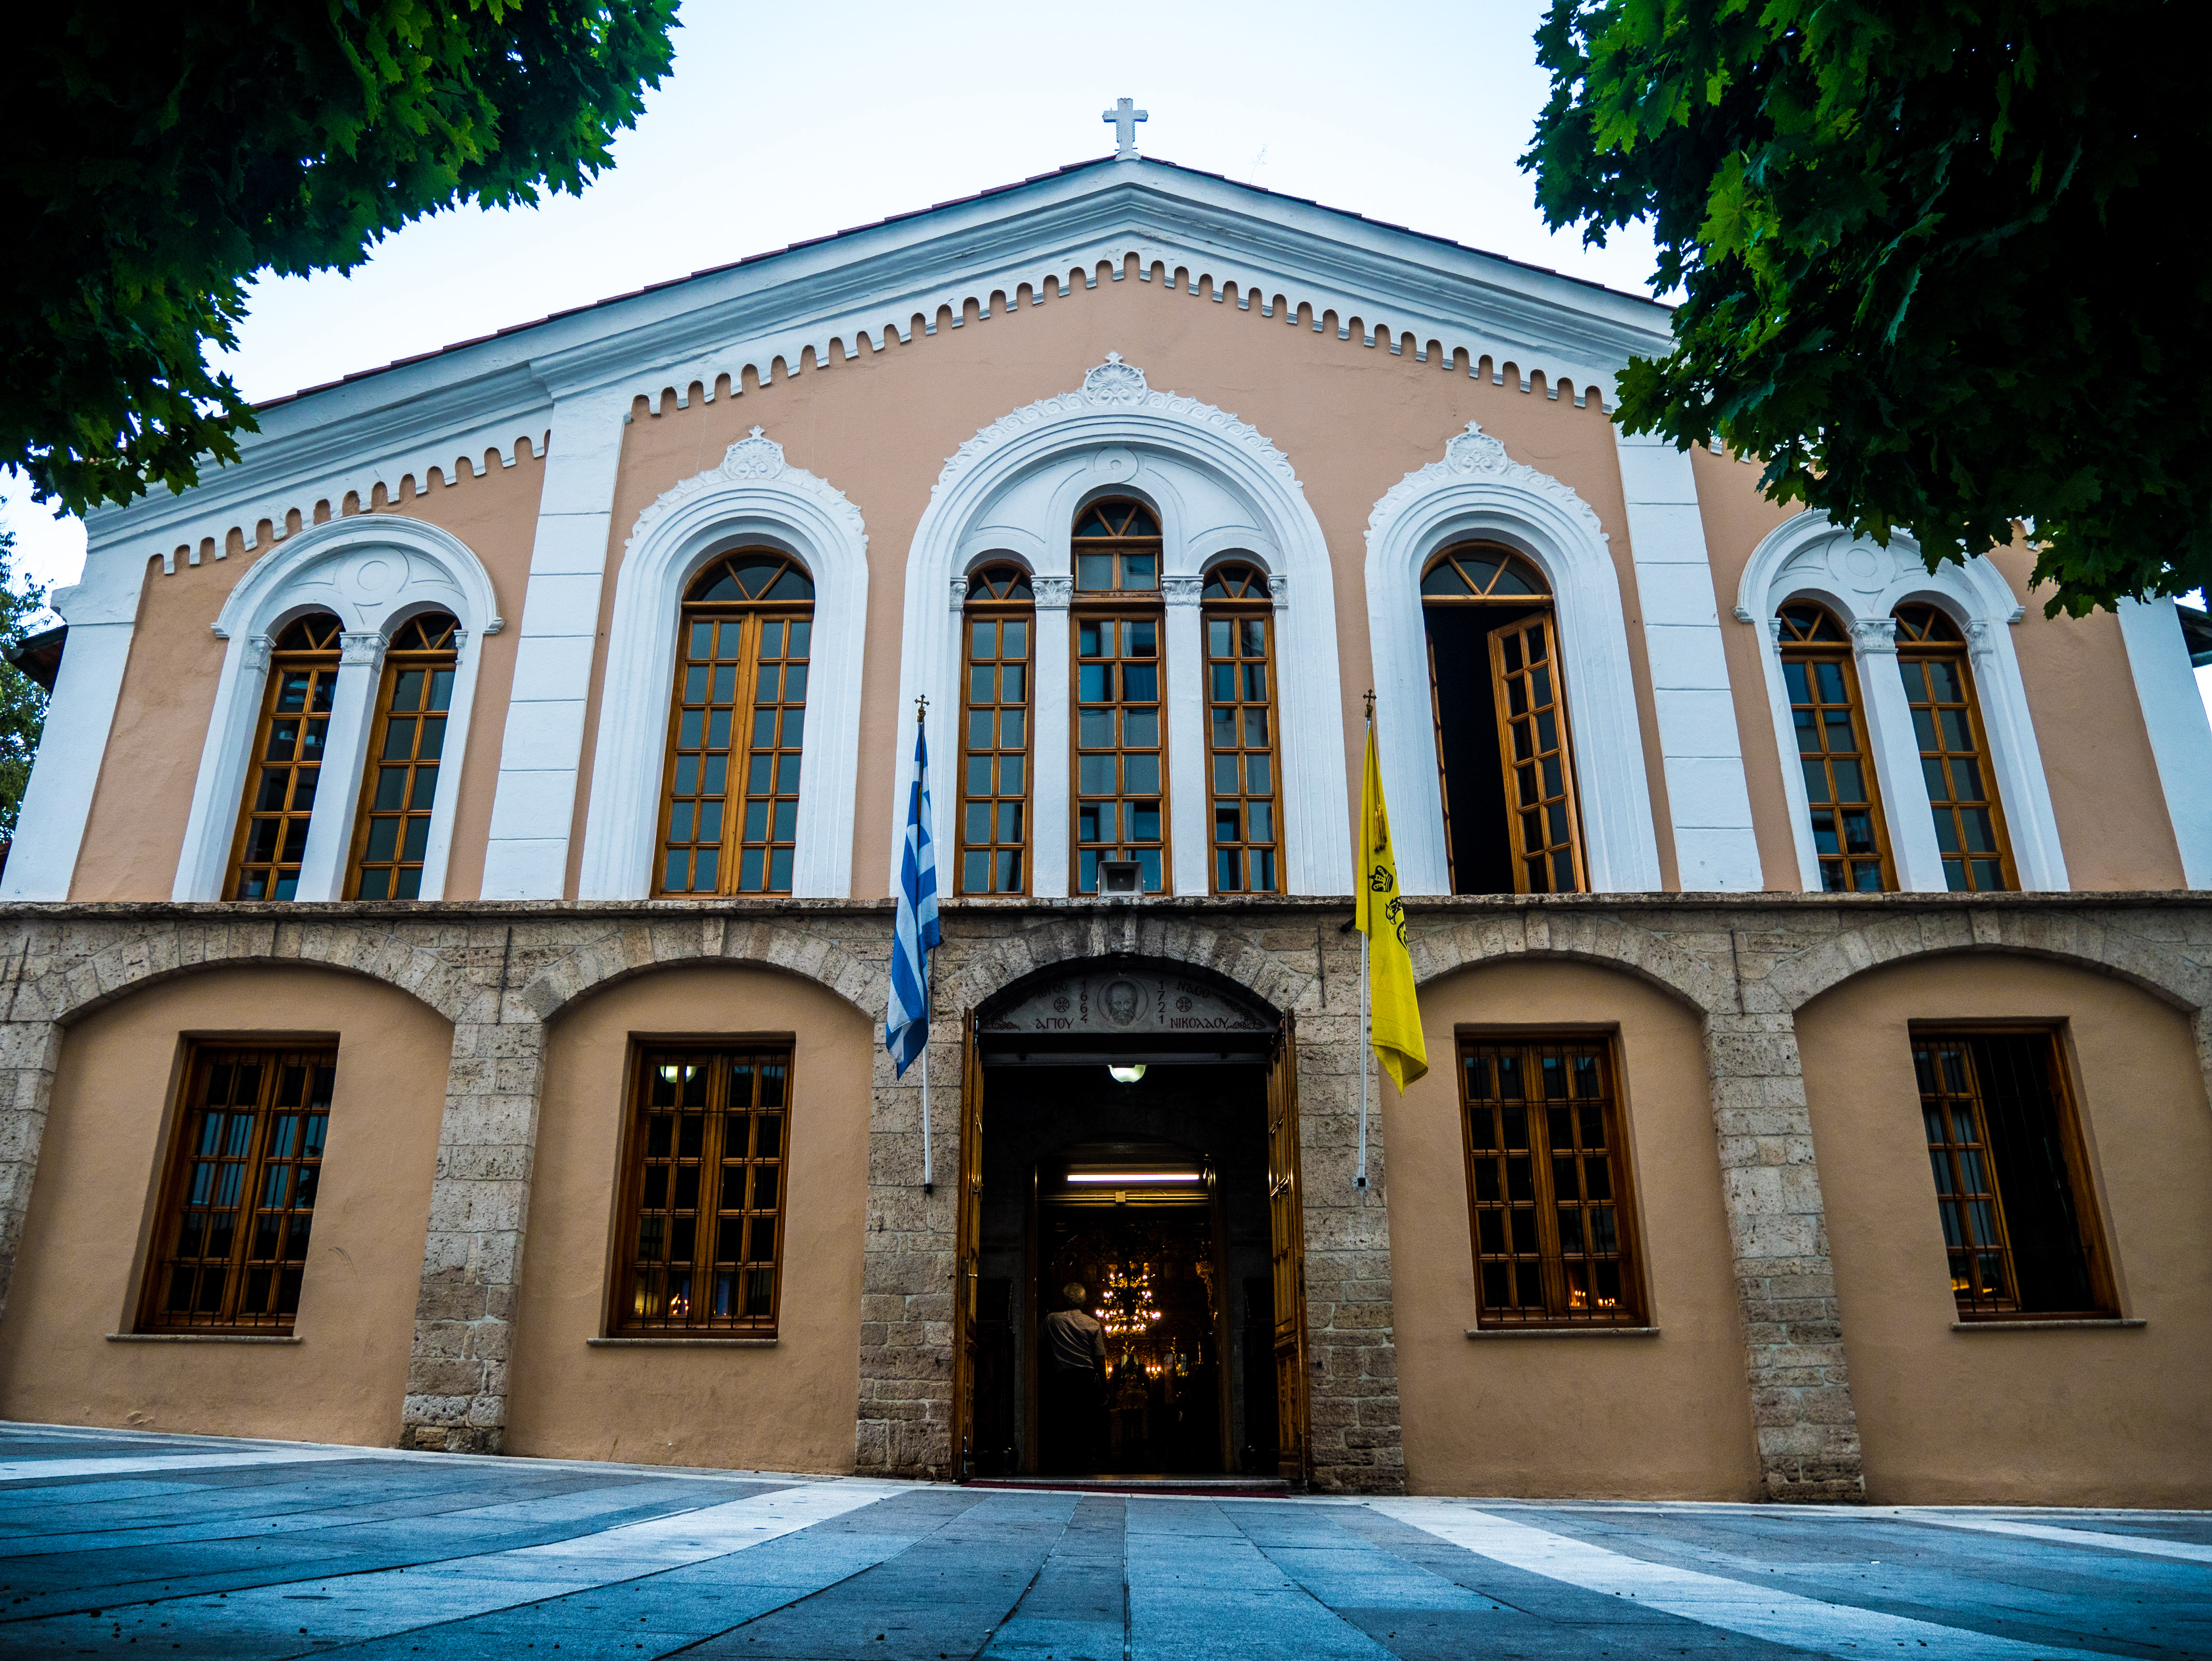 kozani christian singles Dear wseas members of 641 lectures - papers over than 1350 papers that were submitted inwseas cscc (acceptance rate 641/1350) compose the program   similar acceptance rates were also obtained for cuht, upt and emeseg2008 .